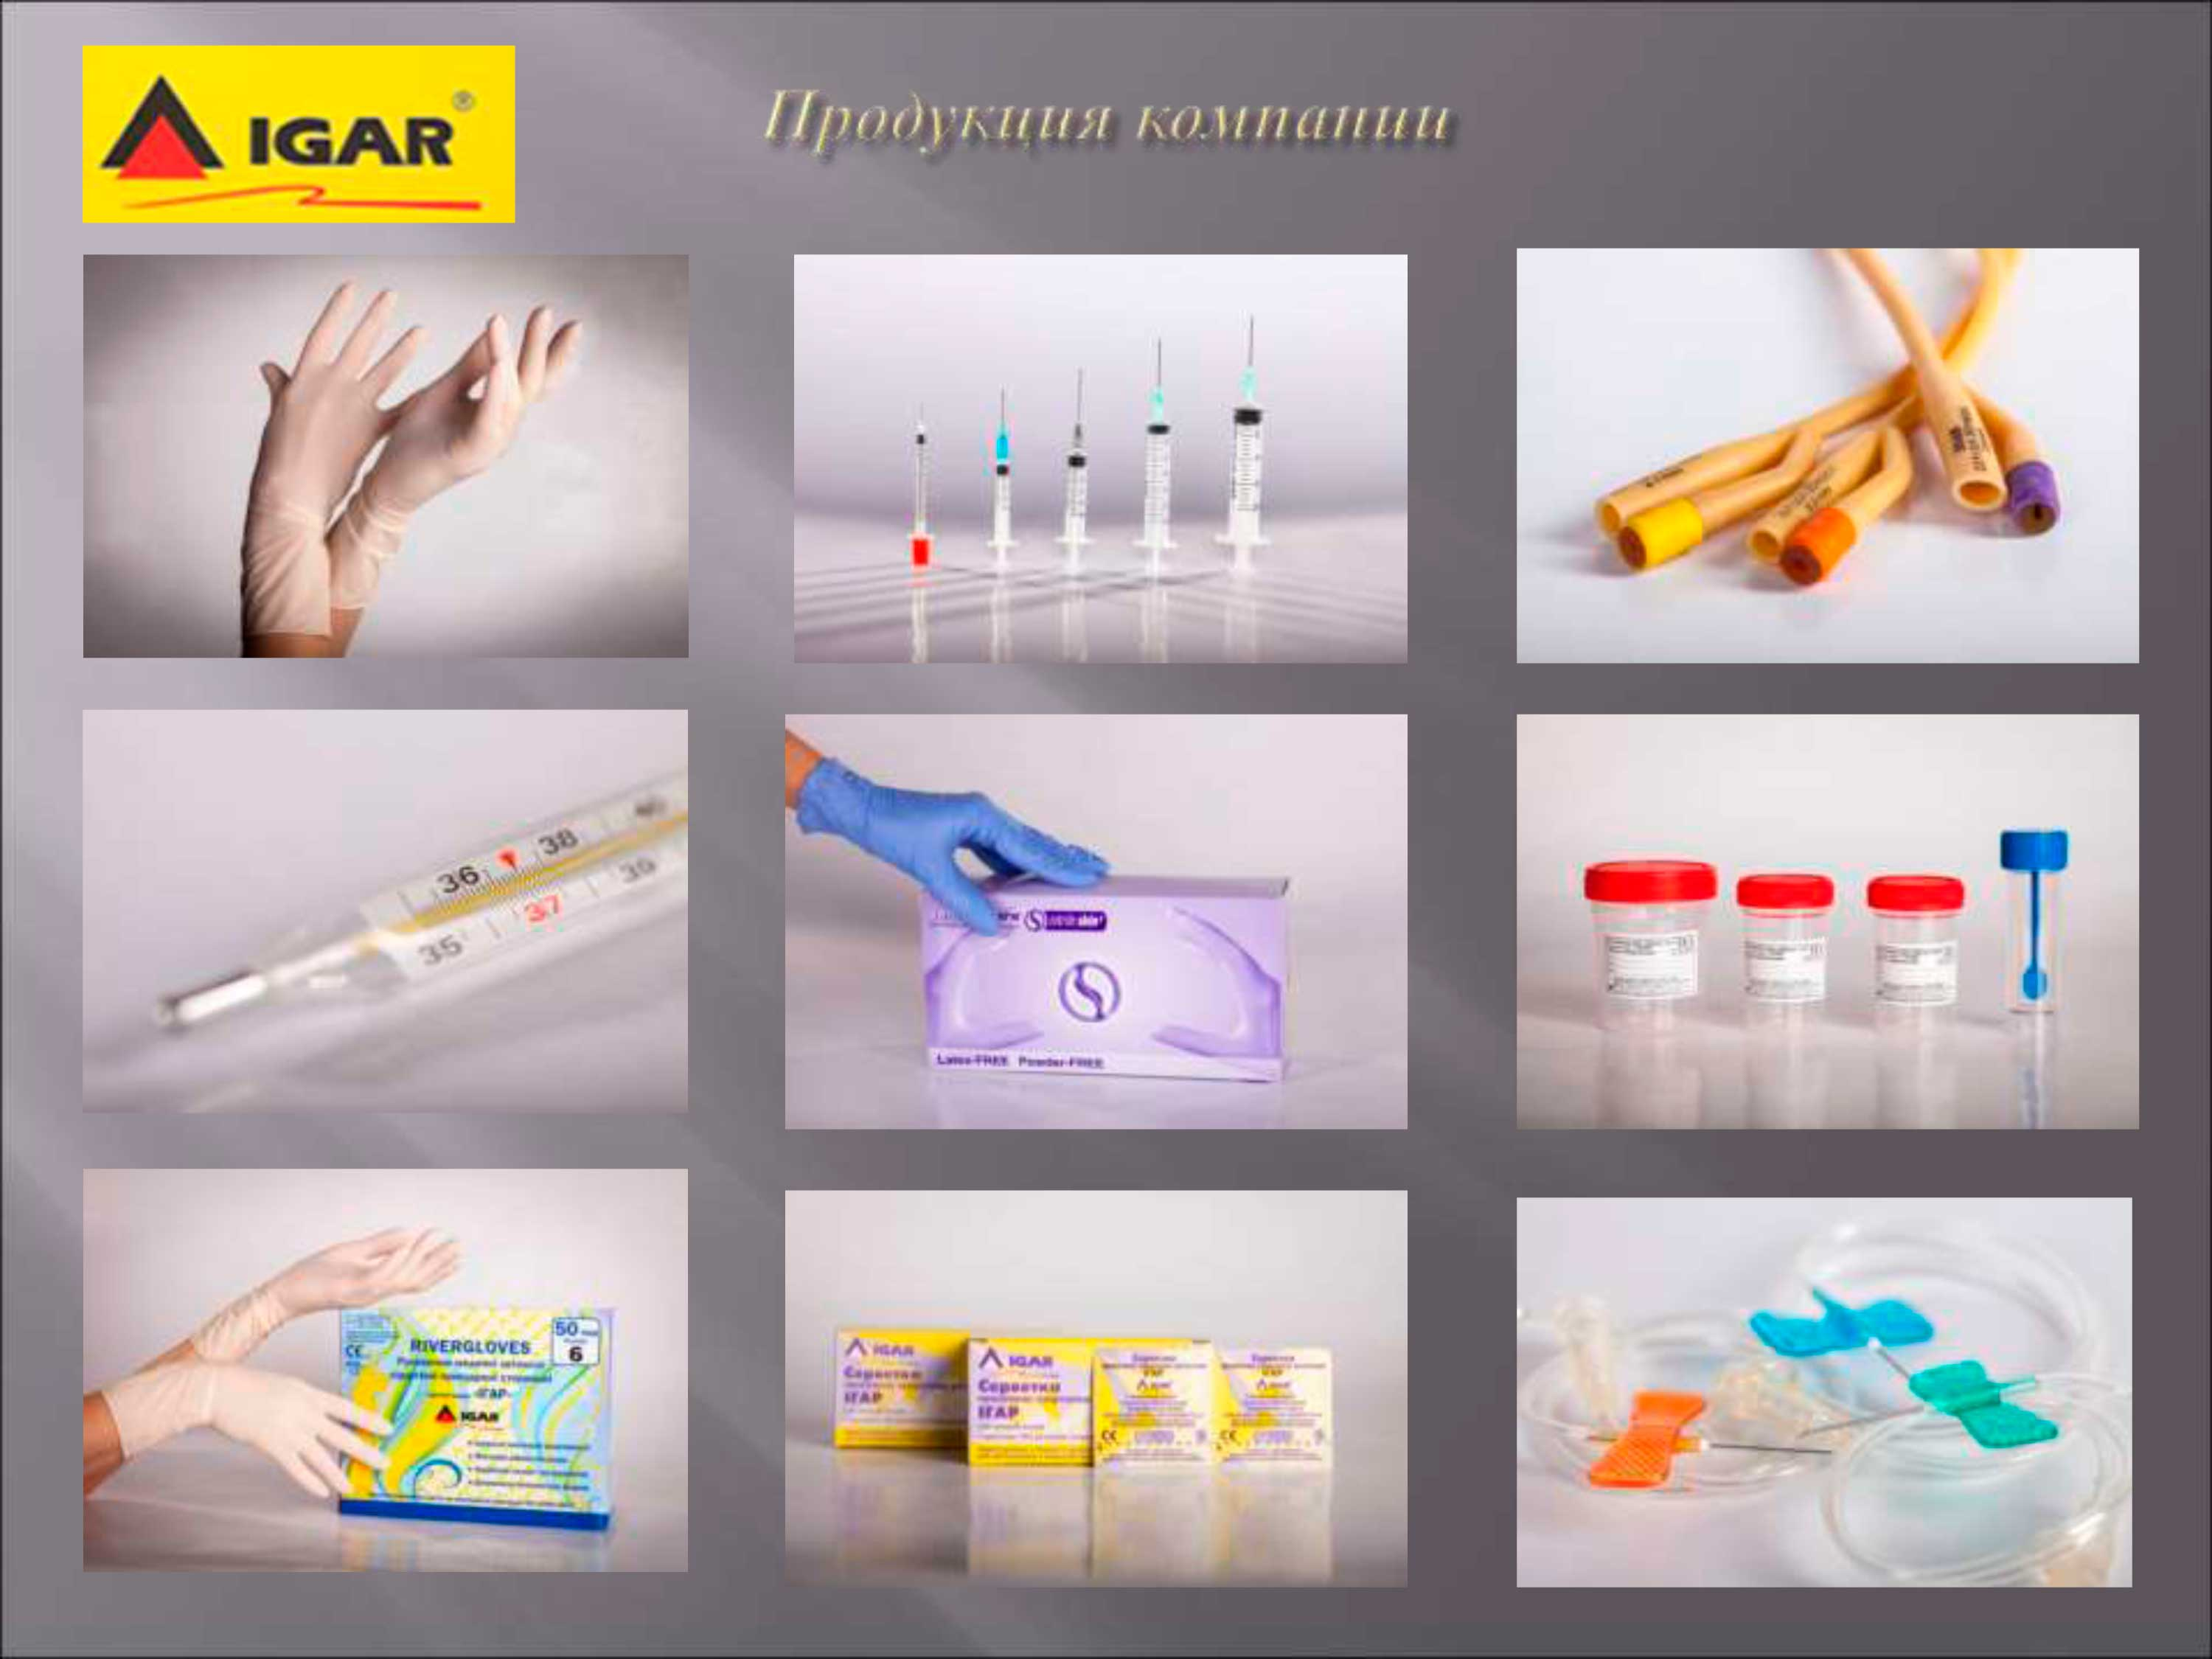 igar-products-2015